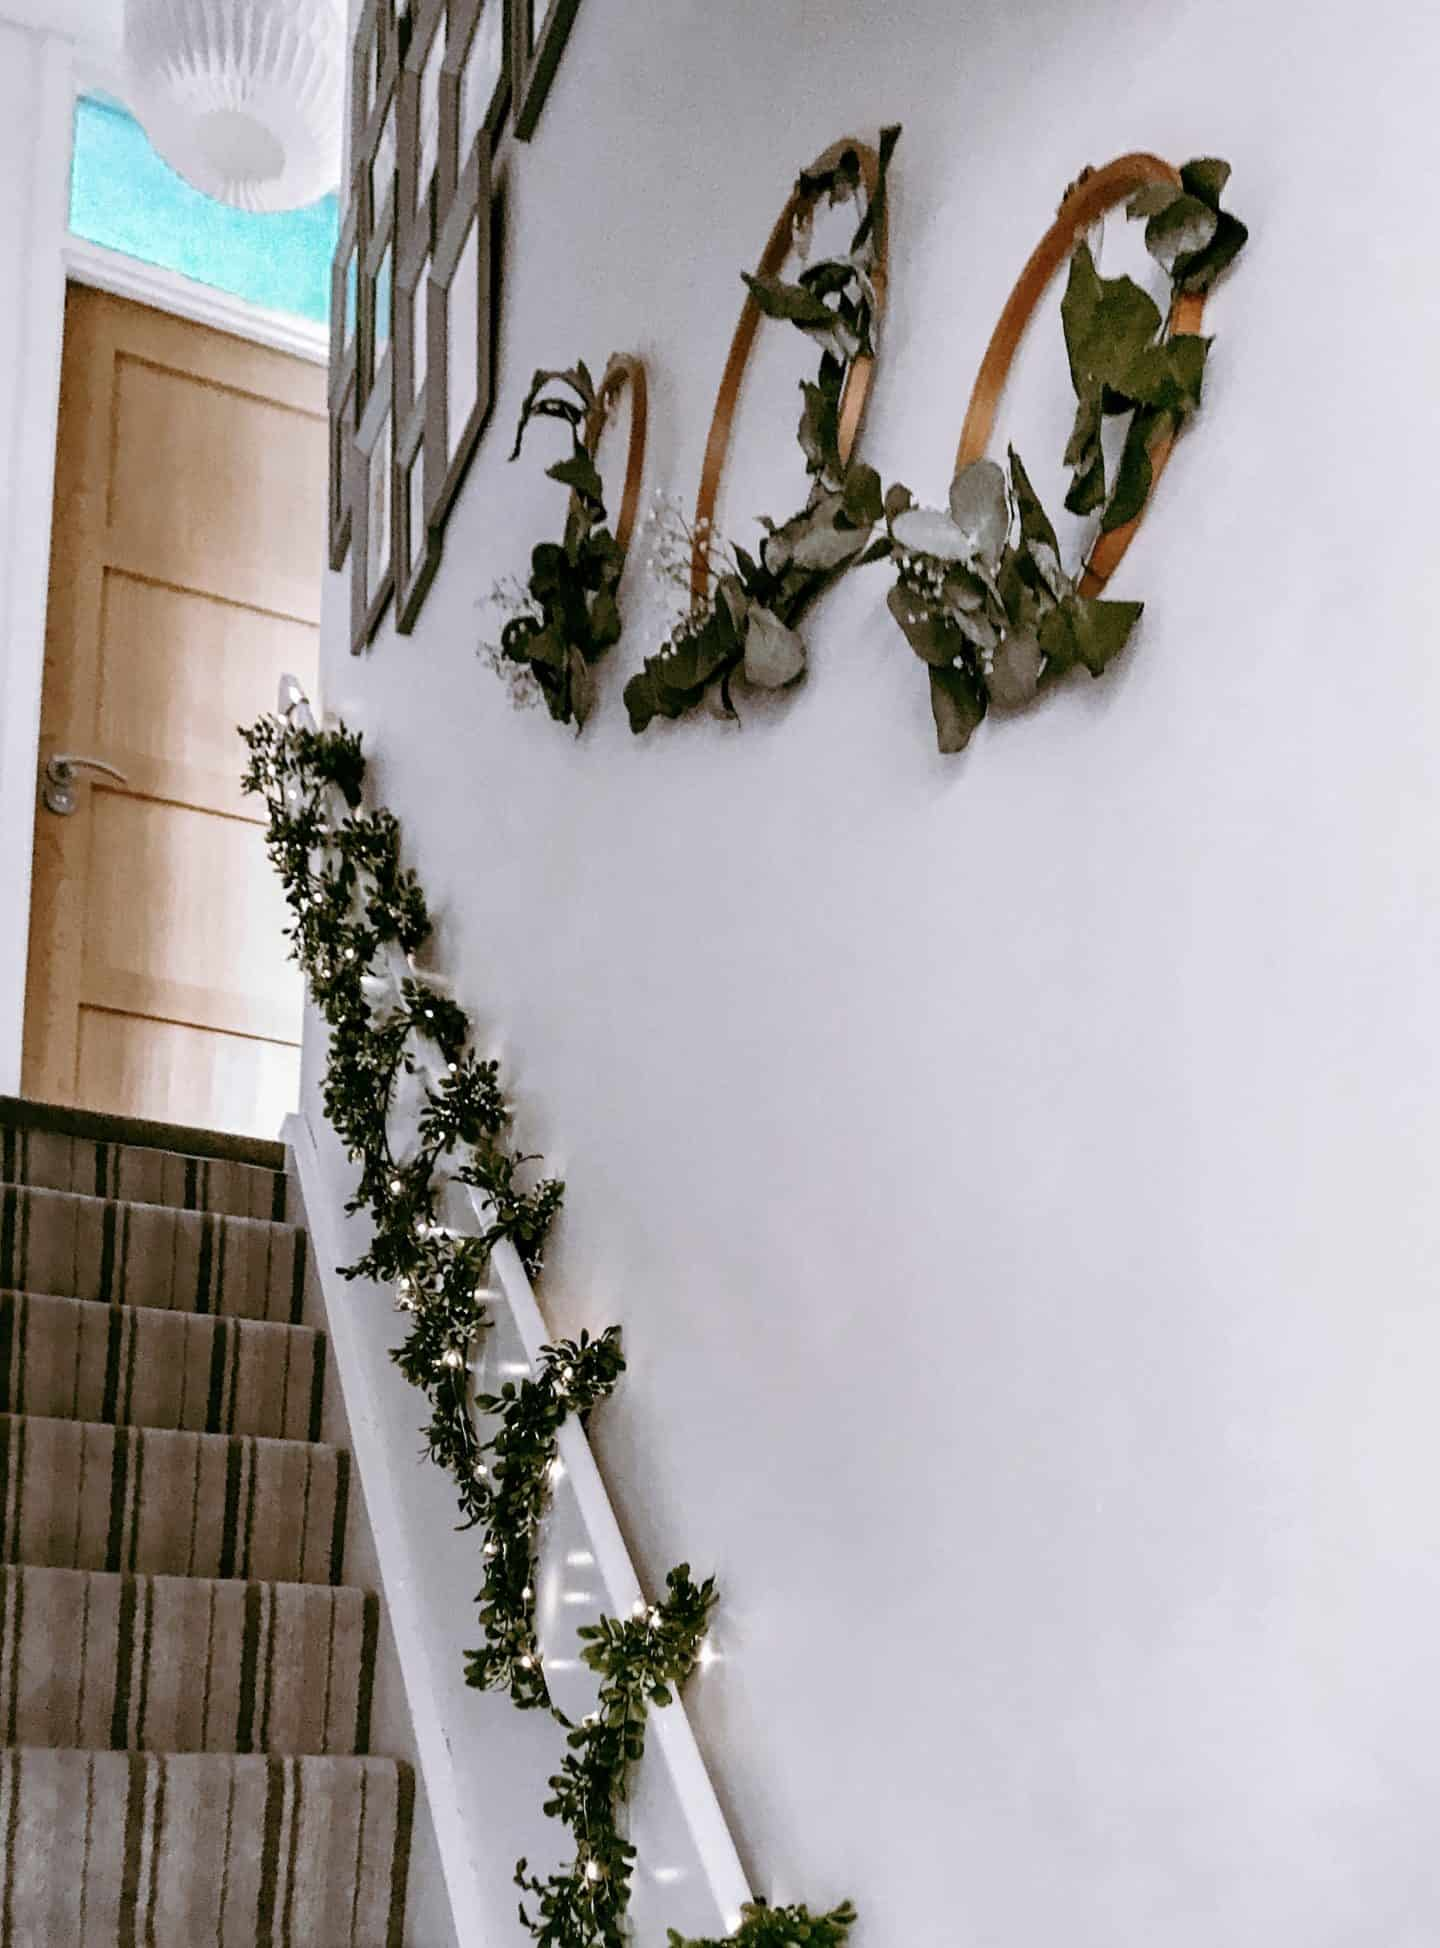 Stairs with fairy lights and garlands and hoop Christmas wreaths